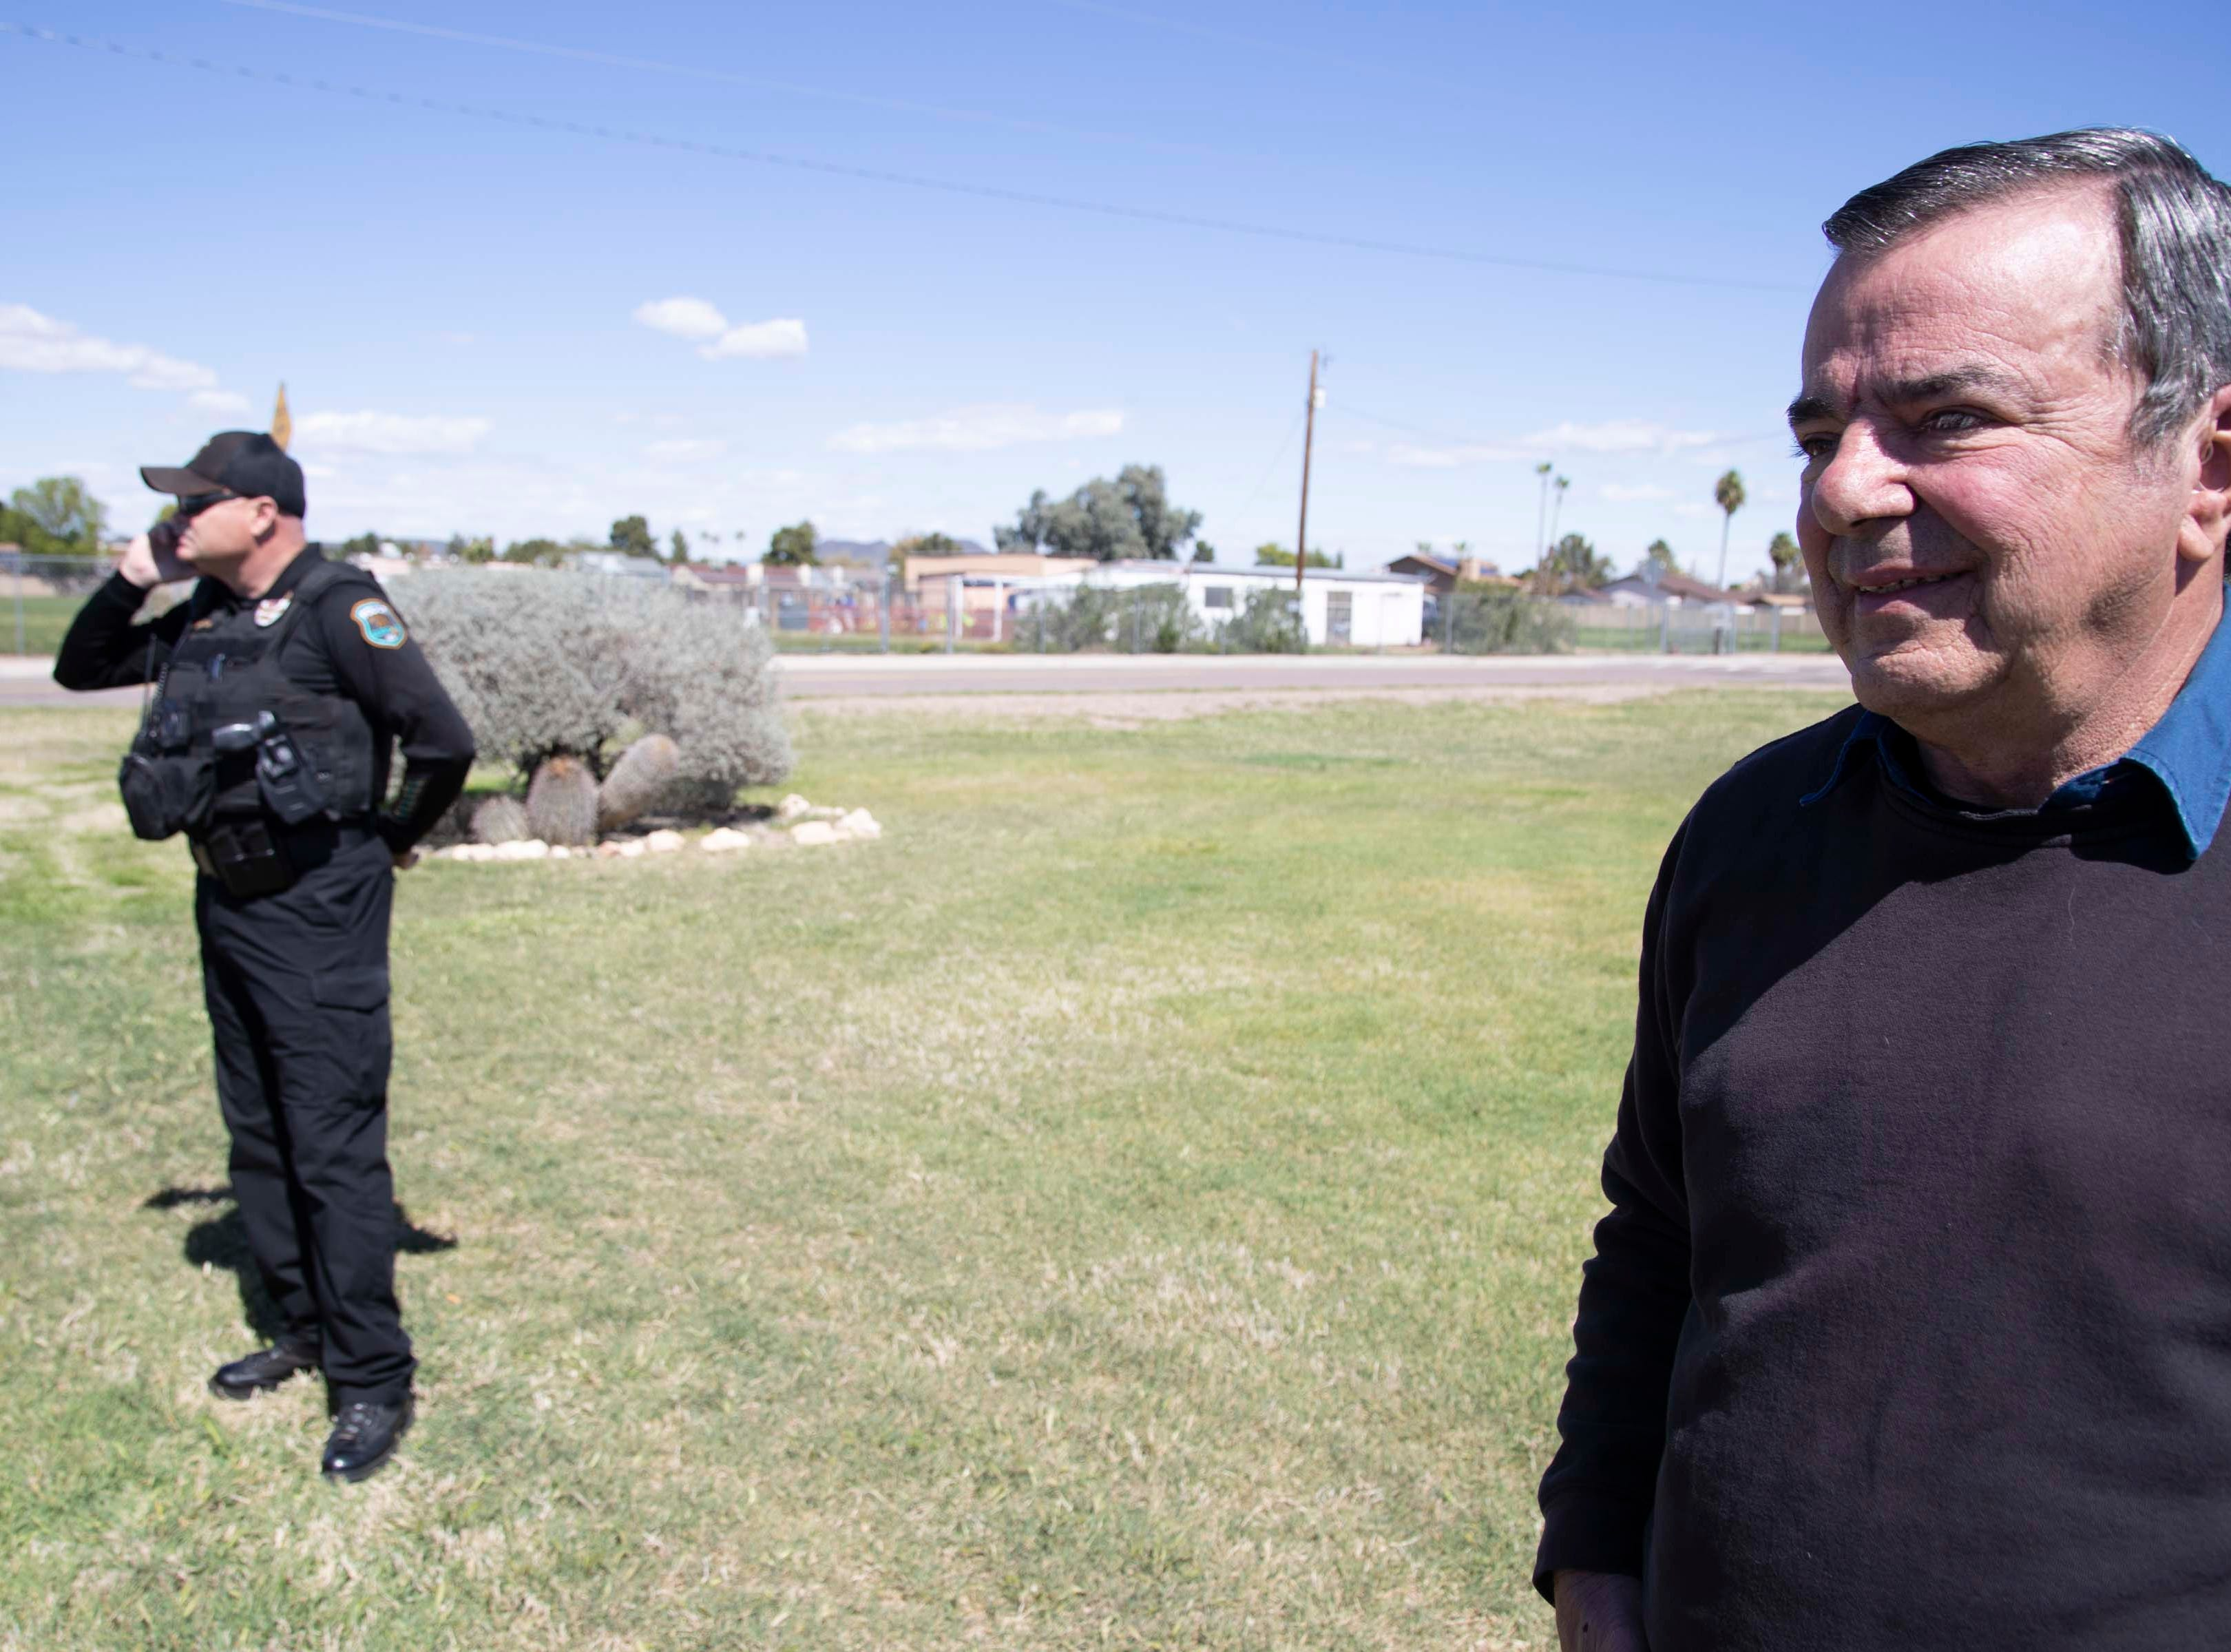 David Giles, a resident of Granada Estates, meets with Glendale Police Officer Chuck Buffington.